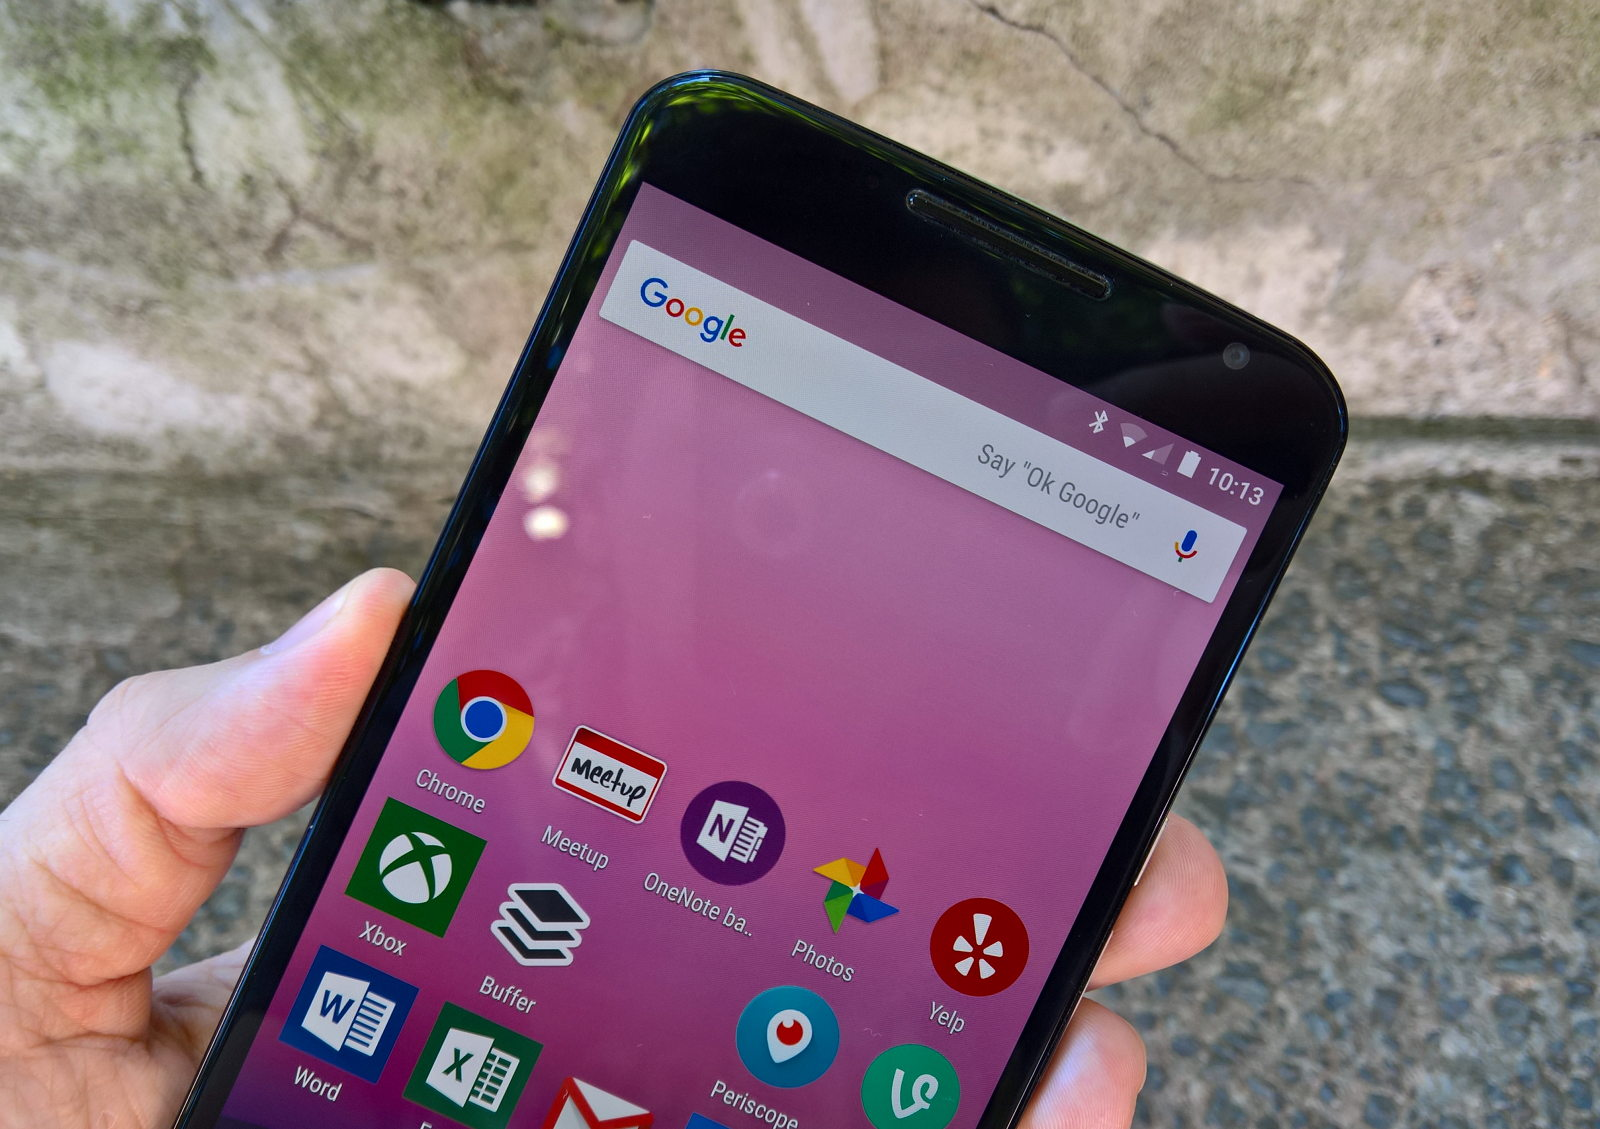 Android 7.0 Nougat running on an Nexus phone